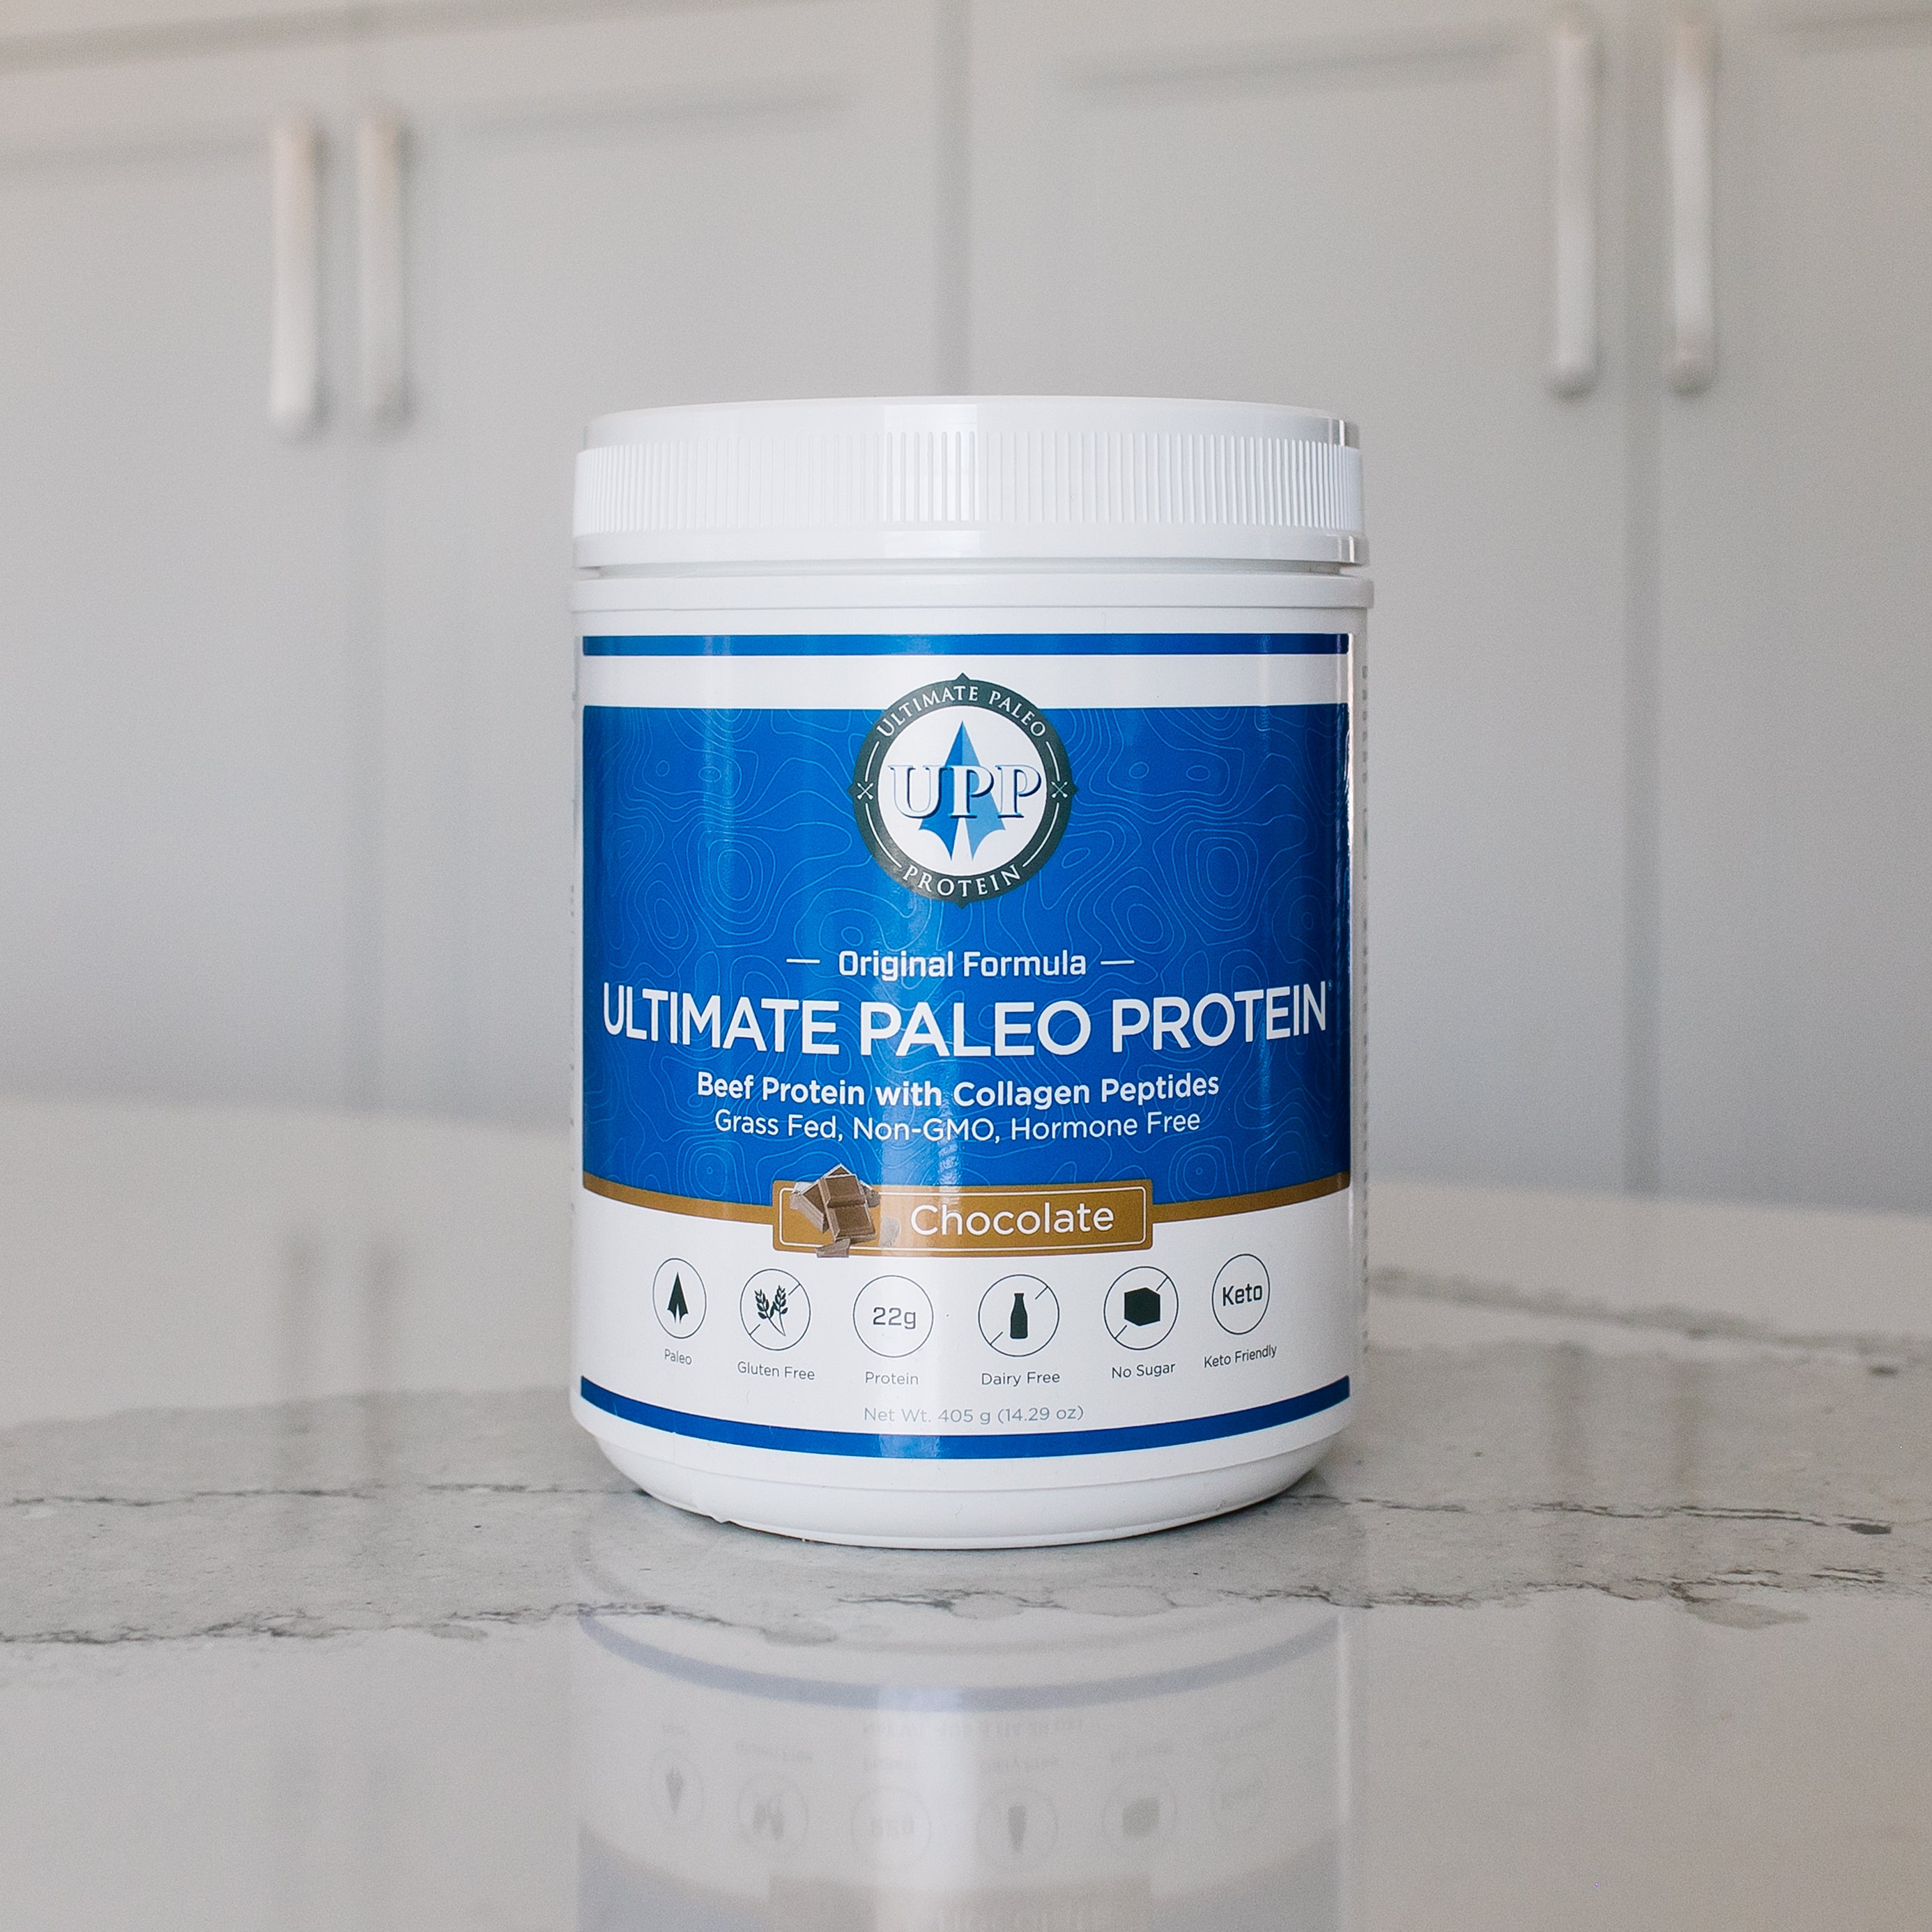 Original, Chocolate Paleo Protein Powder